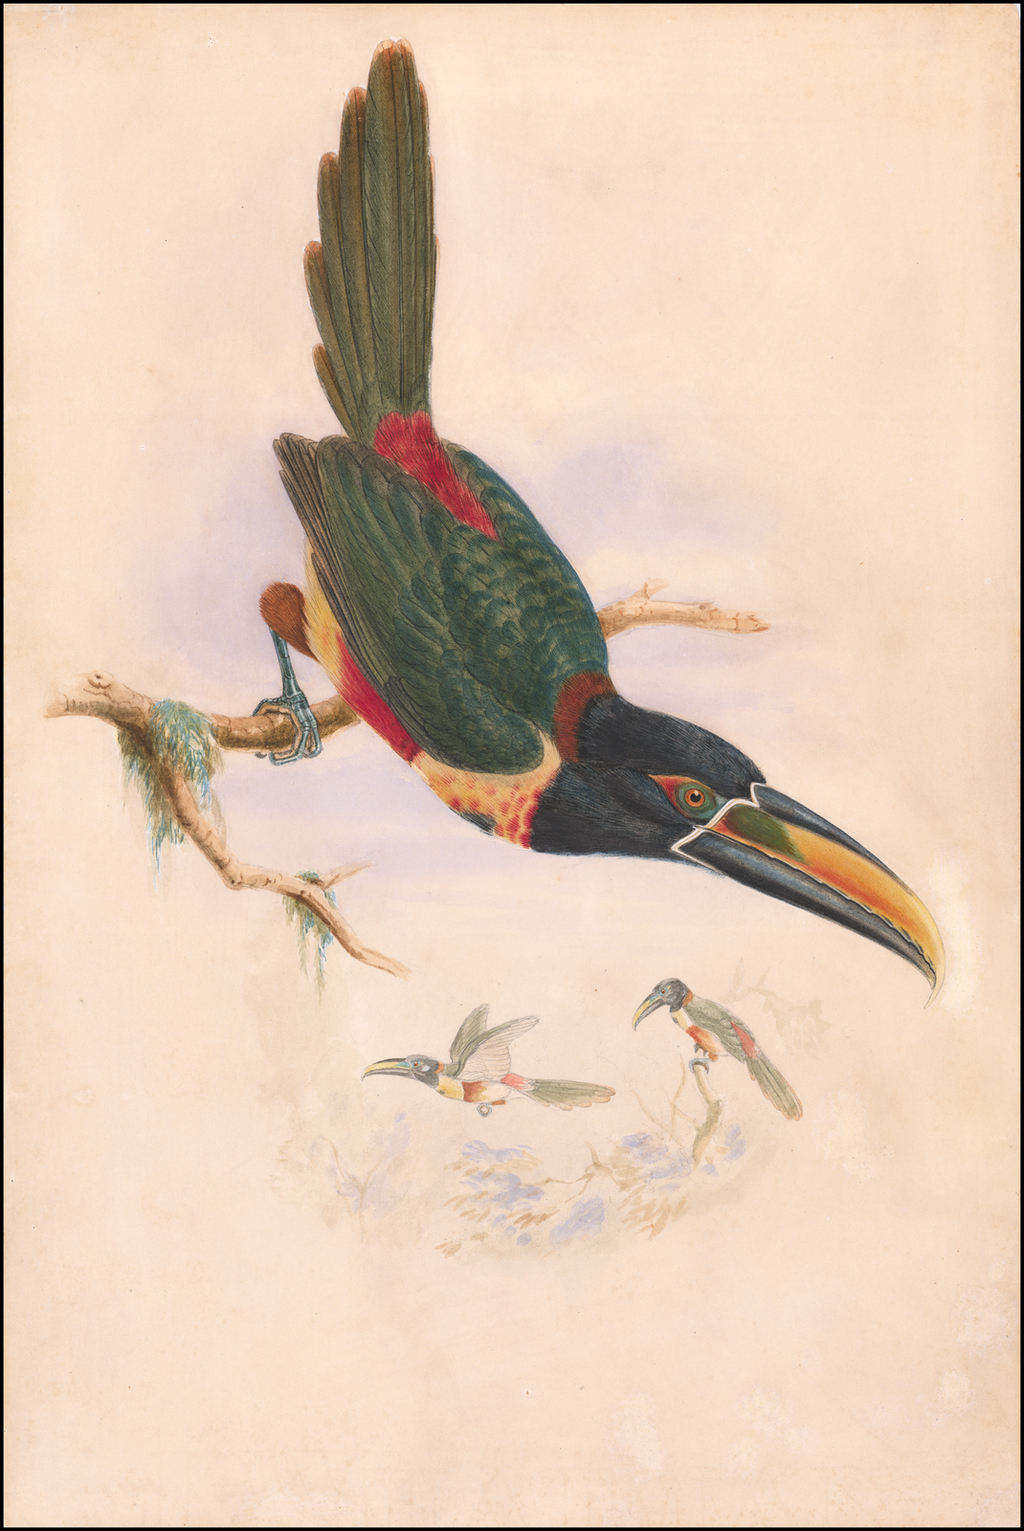 By William Matthew Hart / John Gould